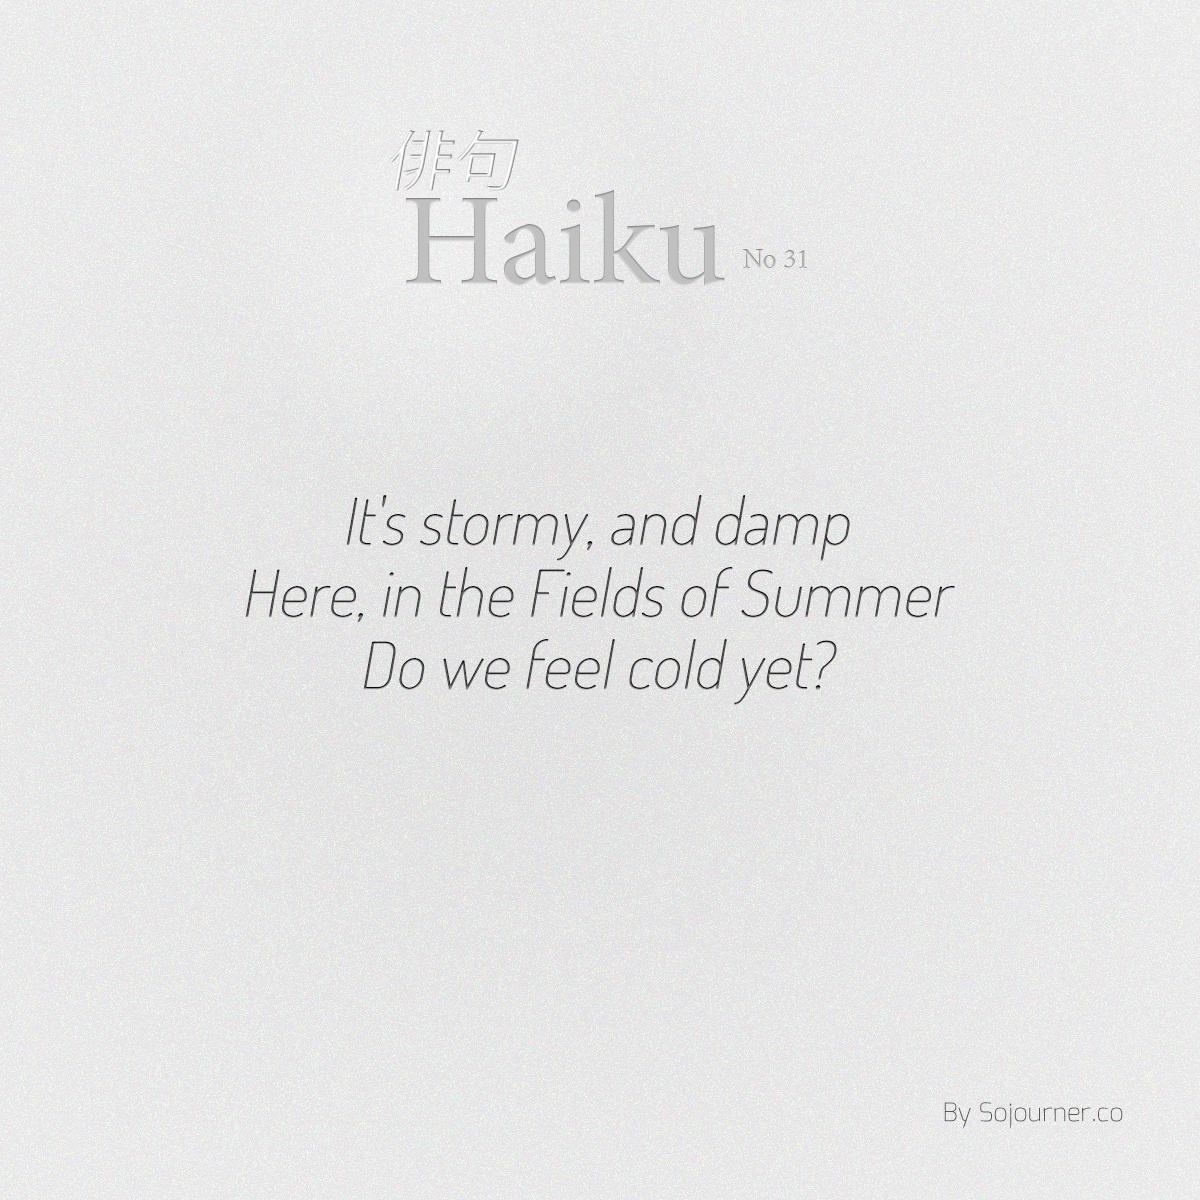 indefiniteloop.com - Haiku No. 31 - Feeling Cold.